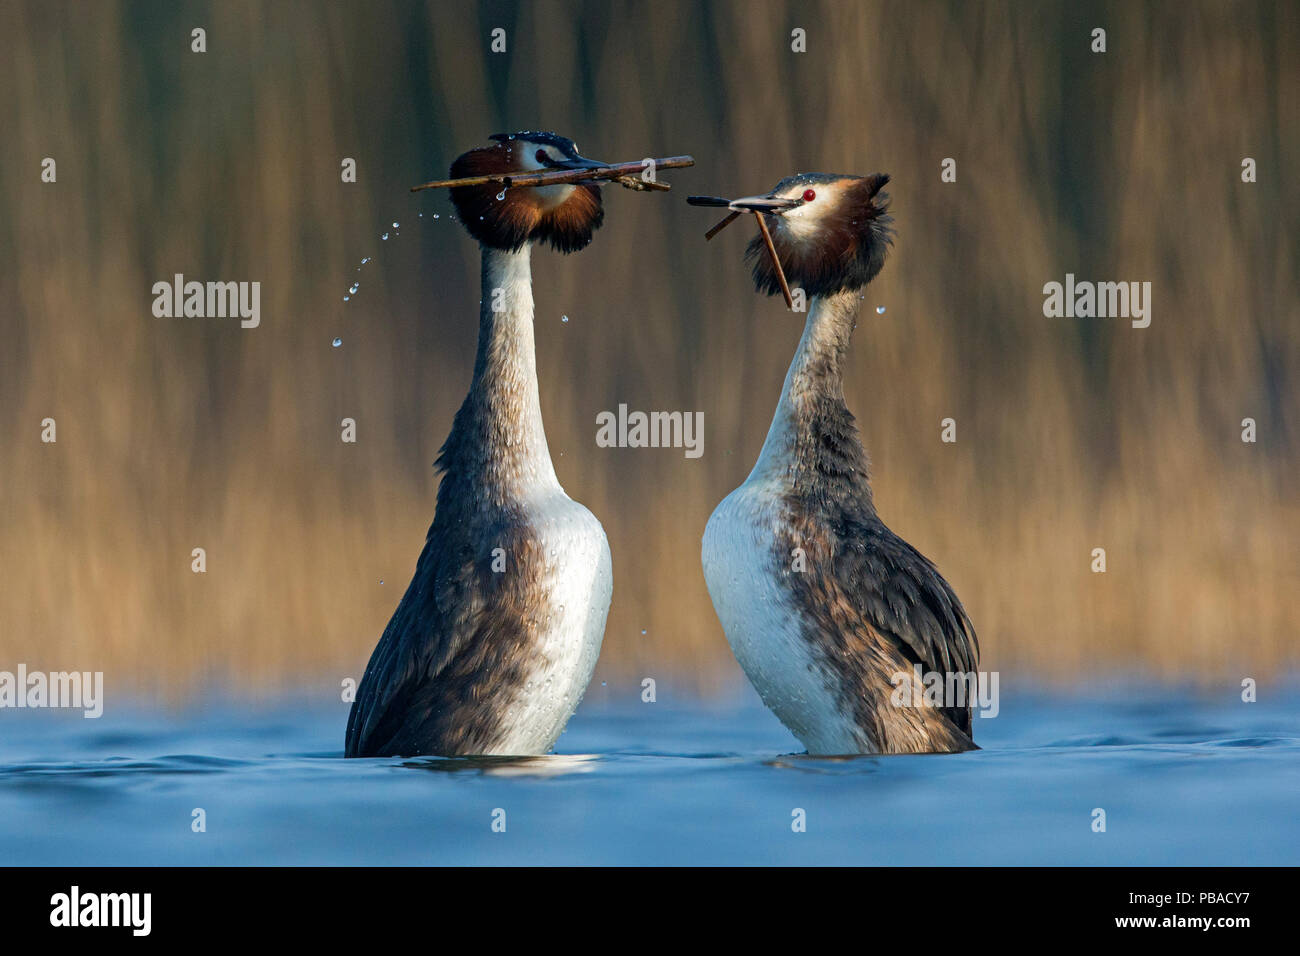 Great Crested Grebe (Podiceps cristatus) pair in courtship weed dance during courtship close to a reedbed. The Netherlands. April. - Stock Image